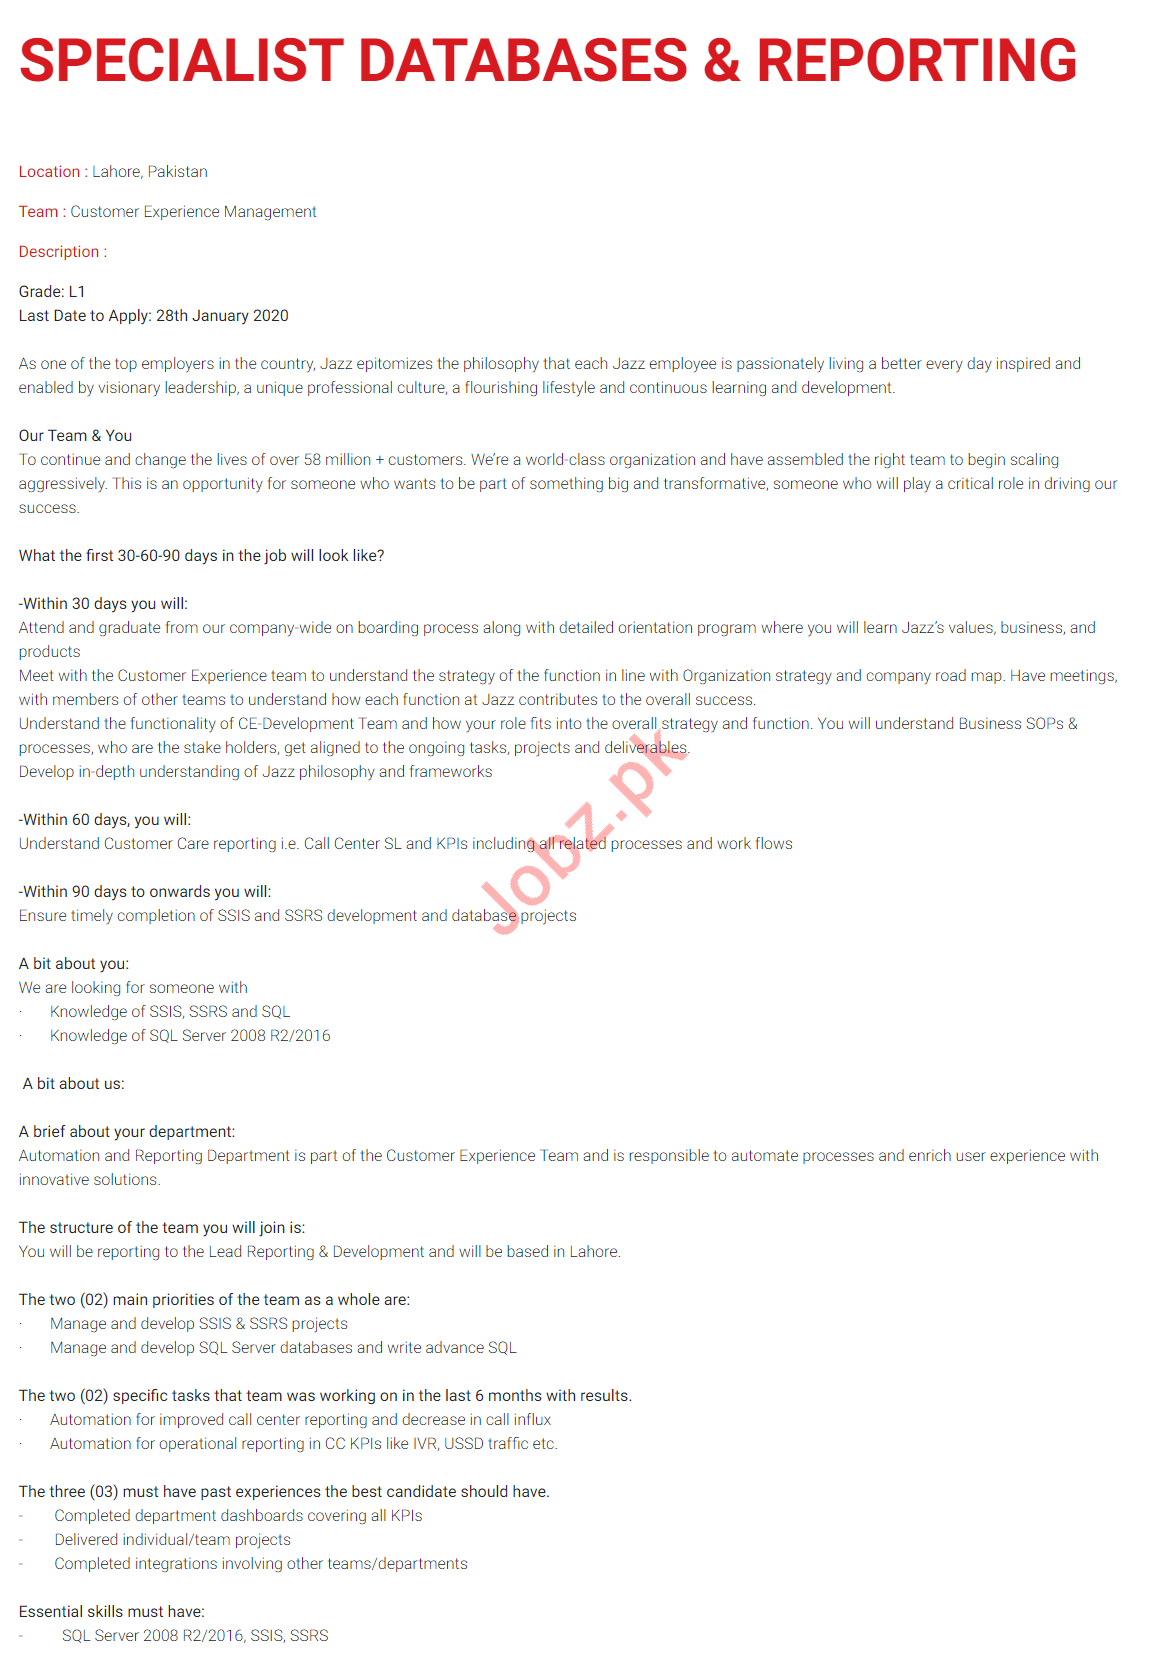 Sopecialist Database & Reporting Jobs in Jazz Telecom